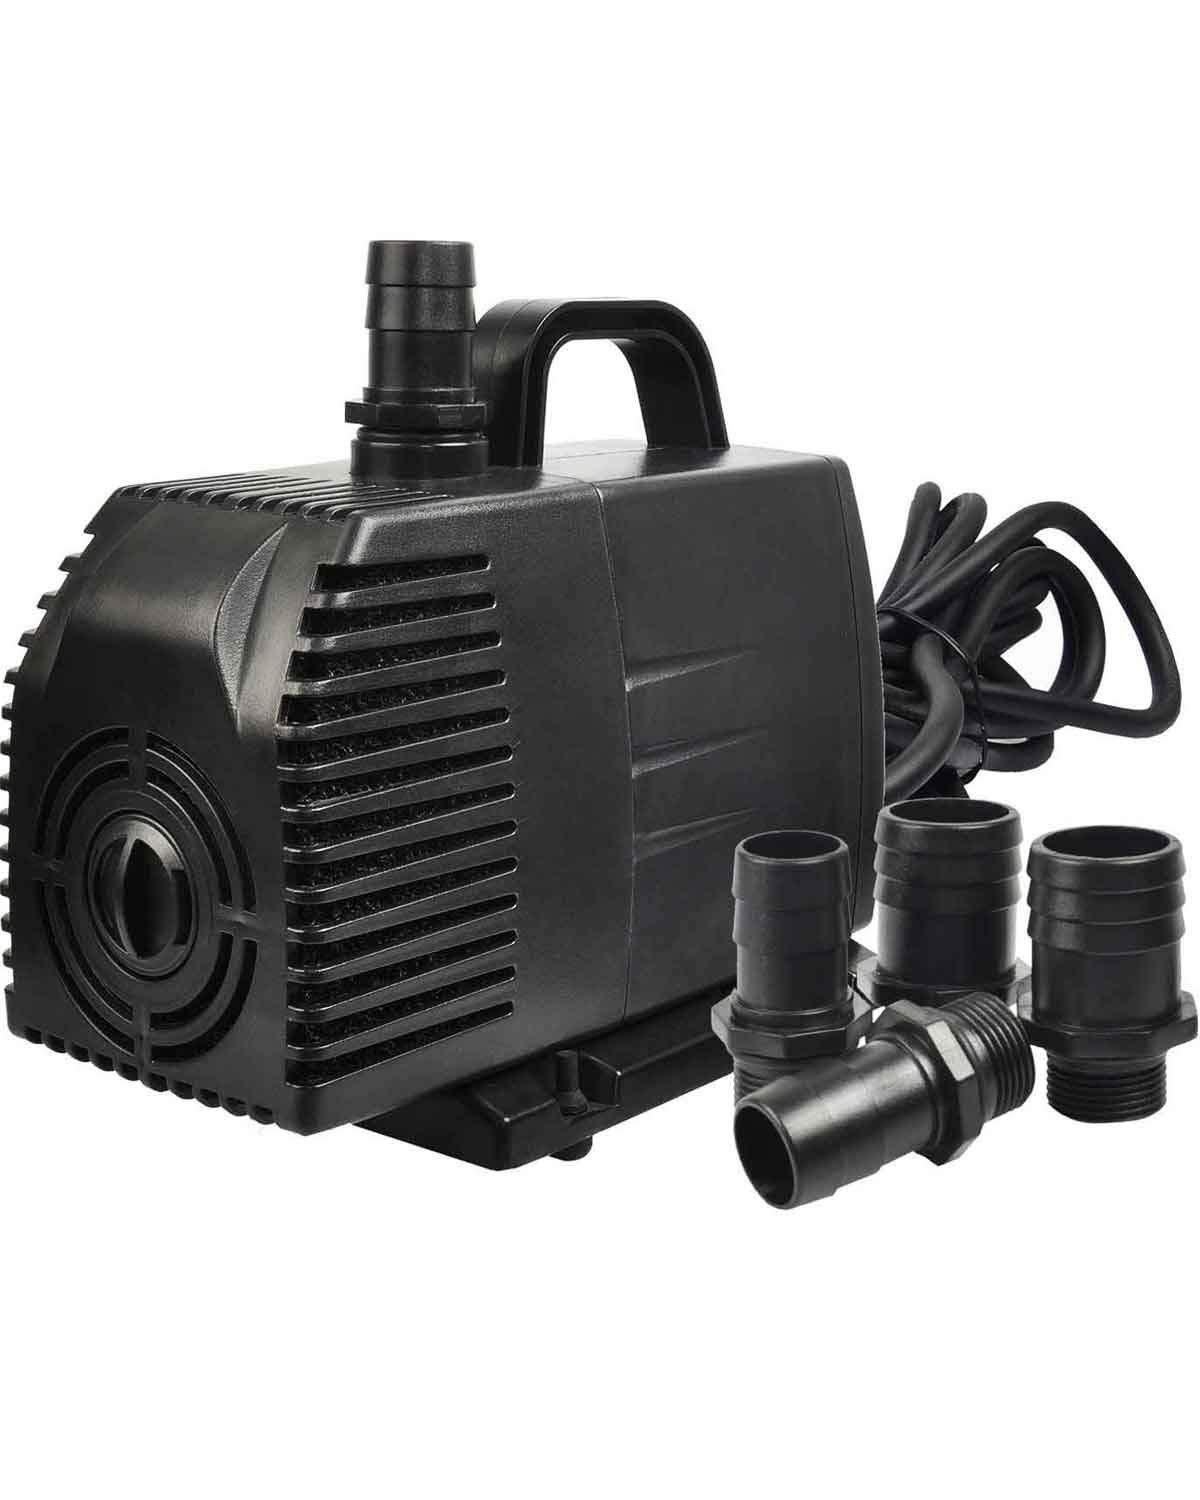 Simple Deluxe LGPUMP1056G 1056 GPH UL Listed Submersible Water Pump with 15' Cord for Fish Tank, Hydroponics, Aquaponics, Fountains, Ponds & Inline, 1-Pack, Black (Renewed) by Simple Deluxe